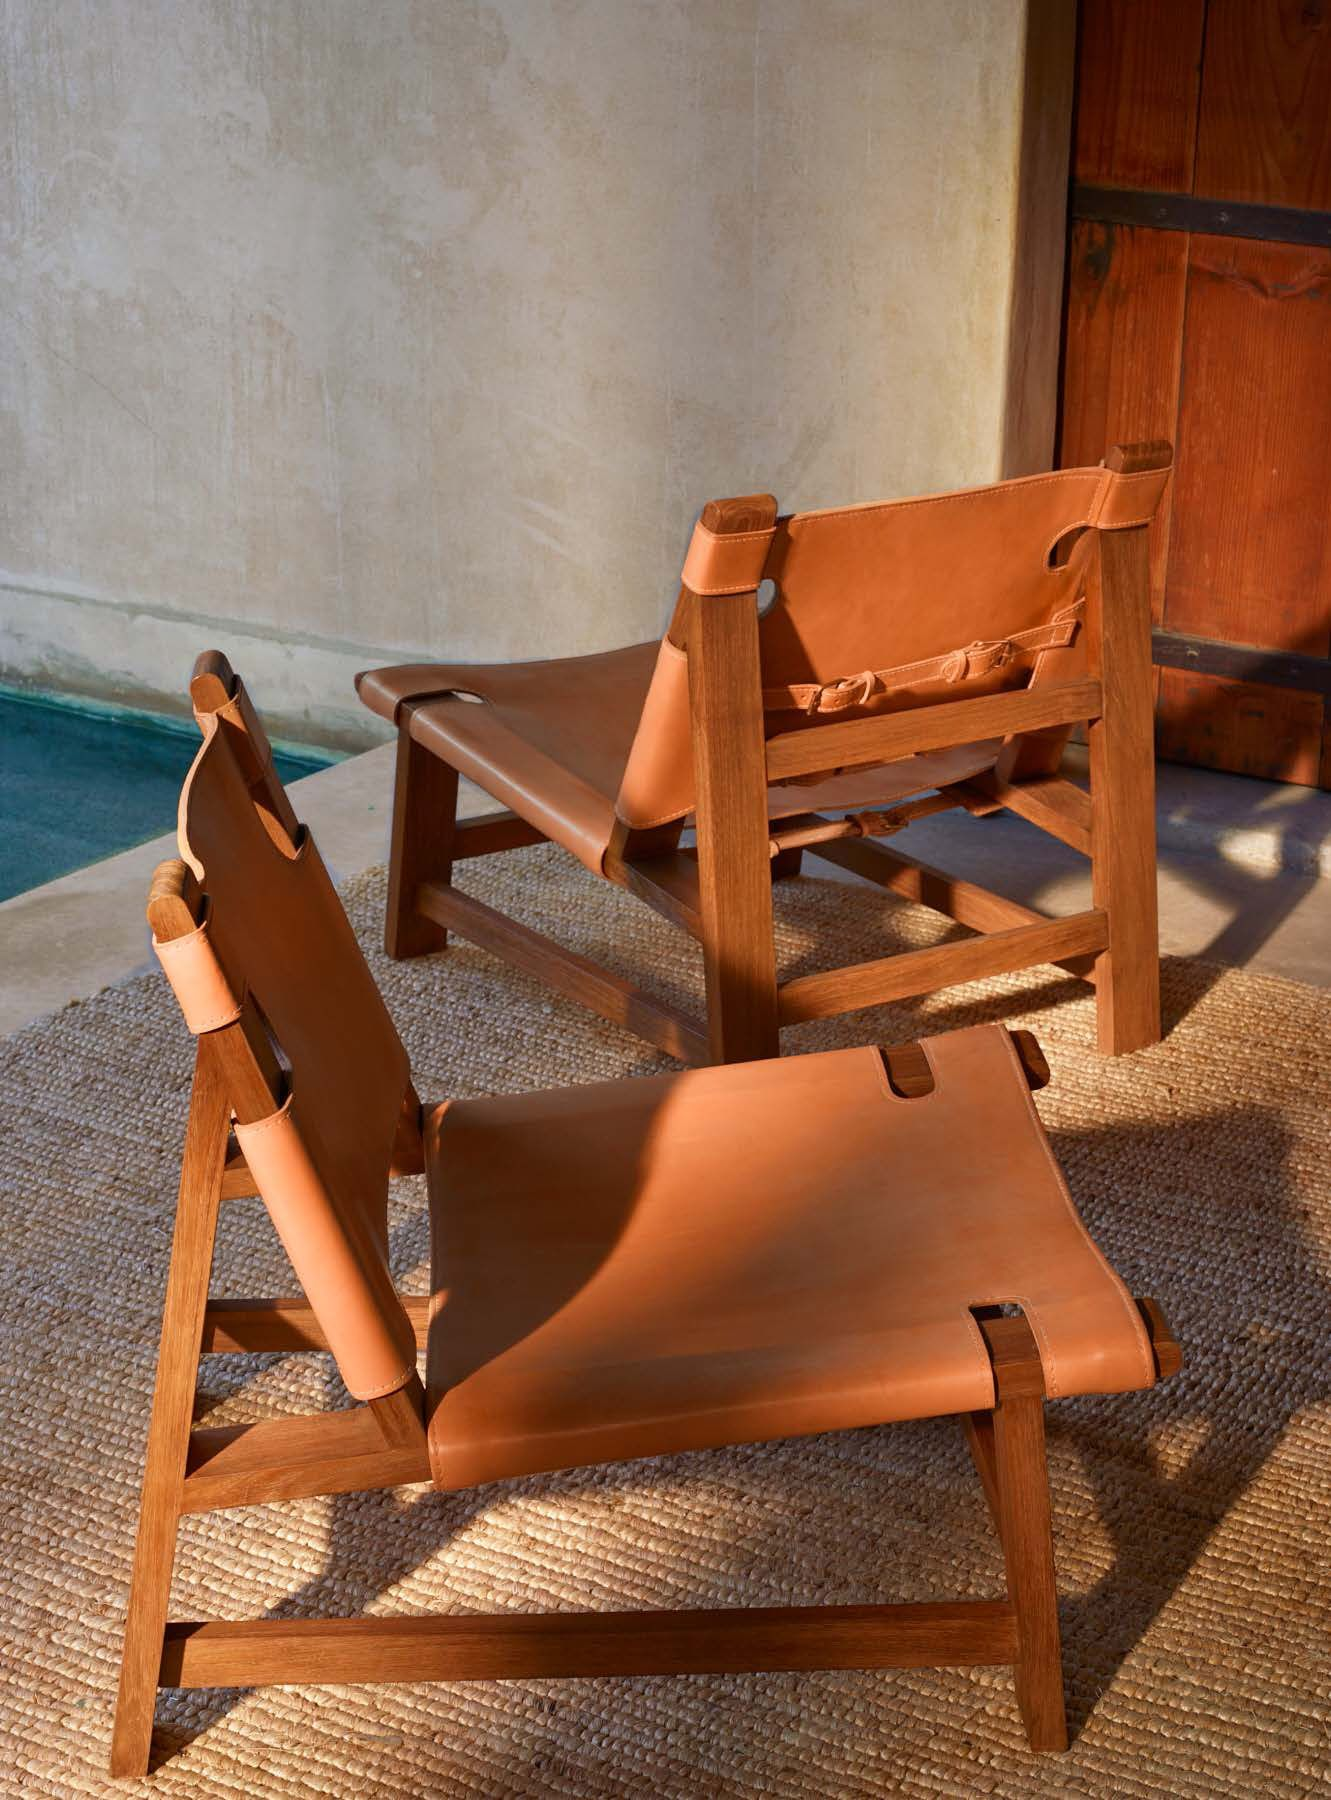 Sonora Canyon Sling Chair In Sunbleached Leather With Buckle Detailing